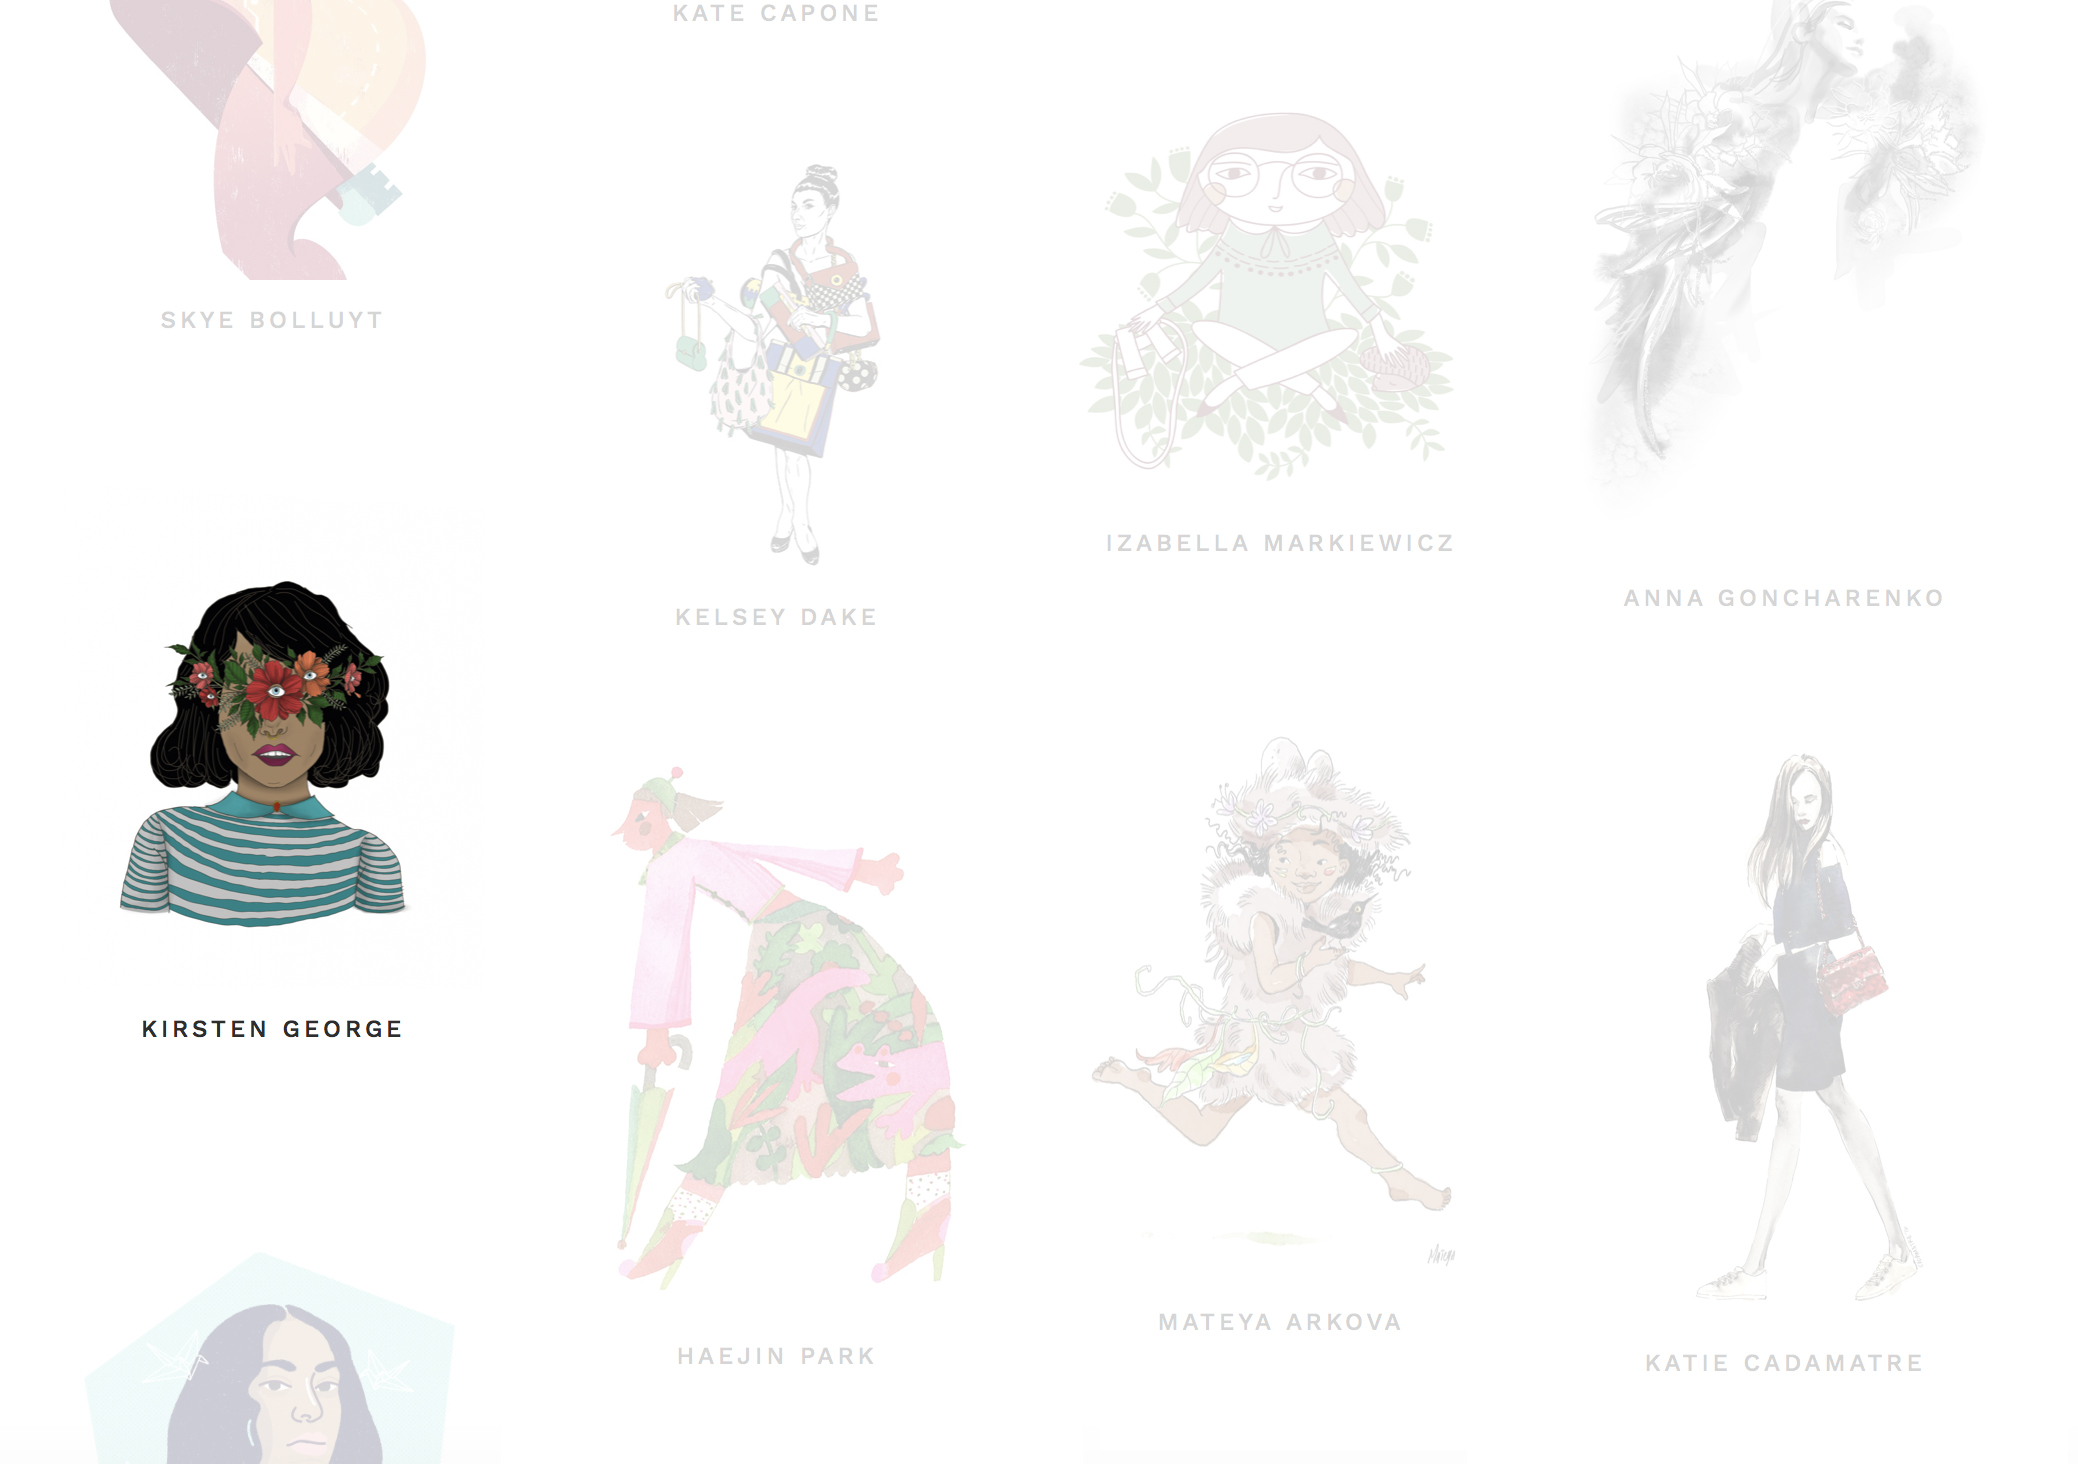 Featured on Women Who Draw, an open directory of female illustrators.